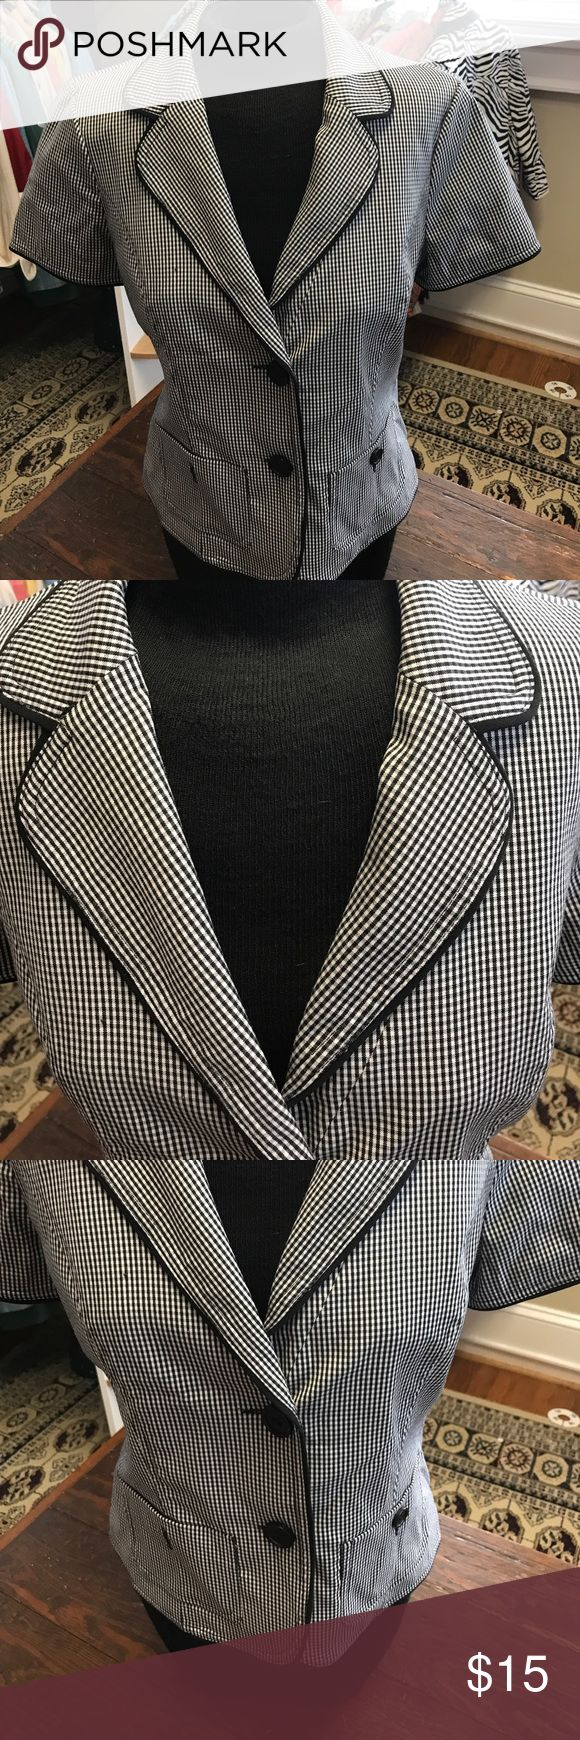 Black /White Stripe Cropped Jacket-Kes Such a cute look in black/white. A great layering piece with short sleeves, pockets and two black buttons down front. Jacket is lined in Black poly, piped in black solid. Excellent condition tribella Jackets & Coats